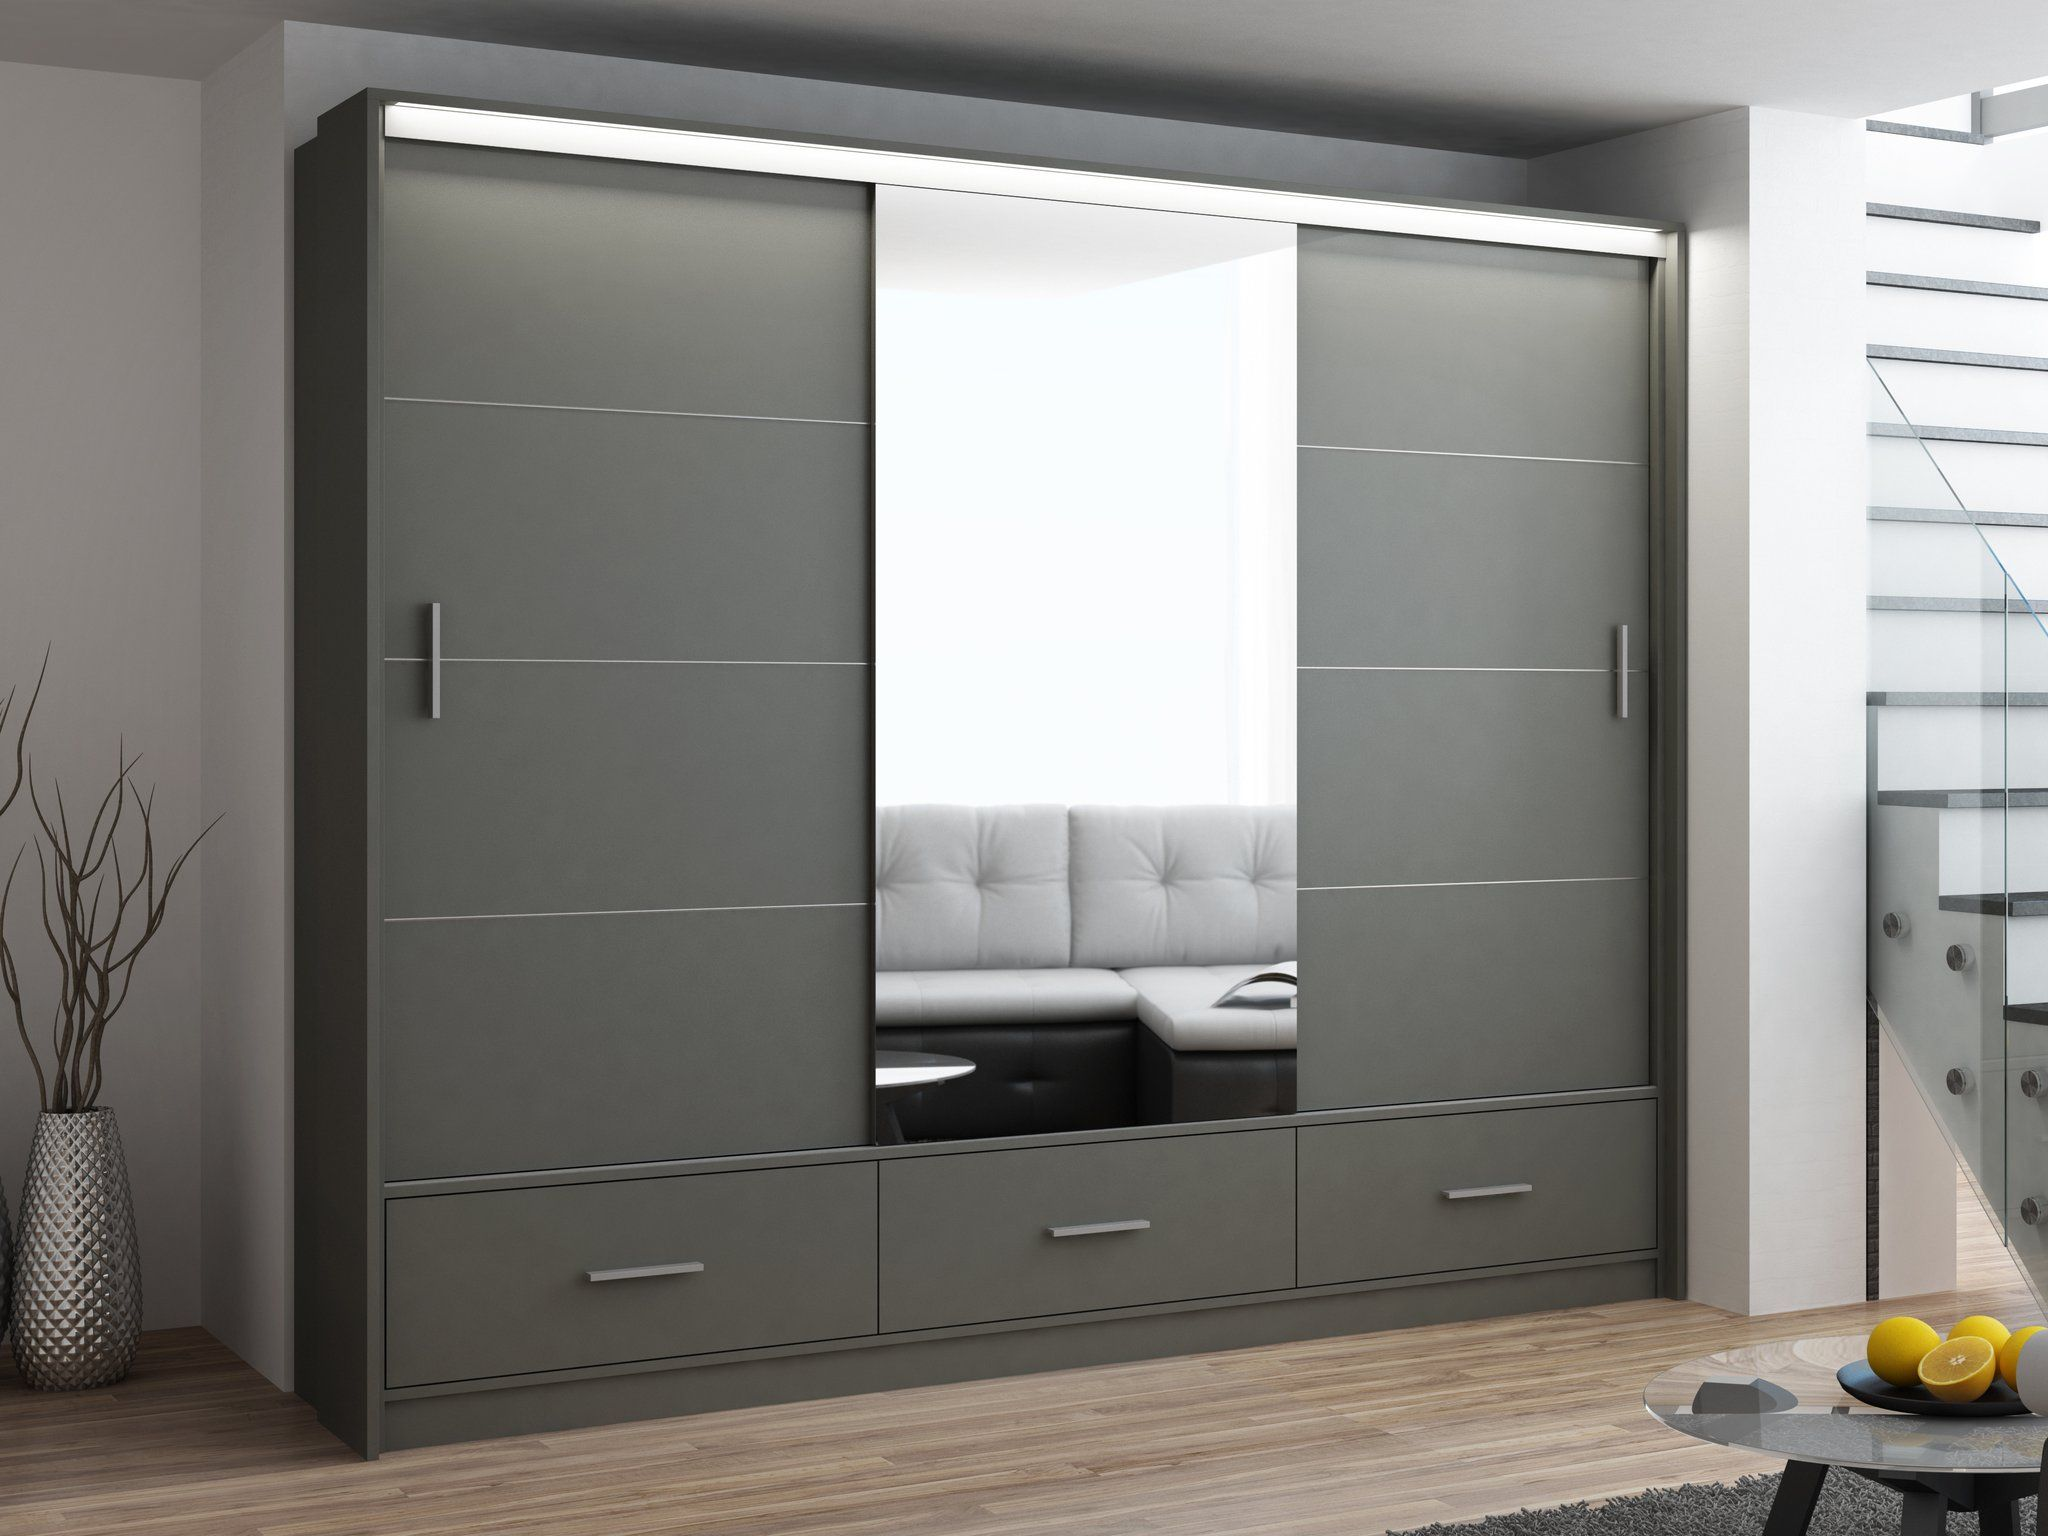 Instrument Lenox Mirror Wardrobe 255cm Graphite Grey Matt Sliding Door Wardrobe Designs Wardrobe Design Bedroom Wardrobe Door Designs